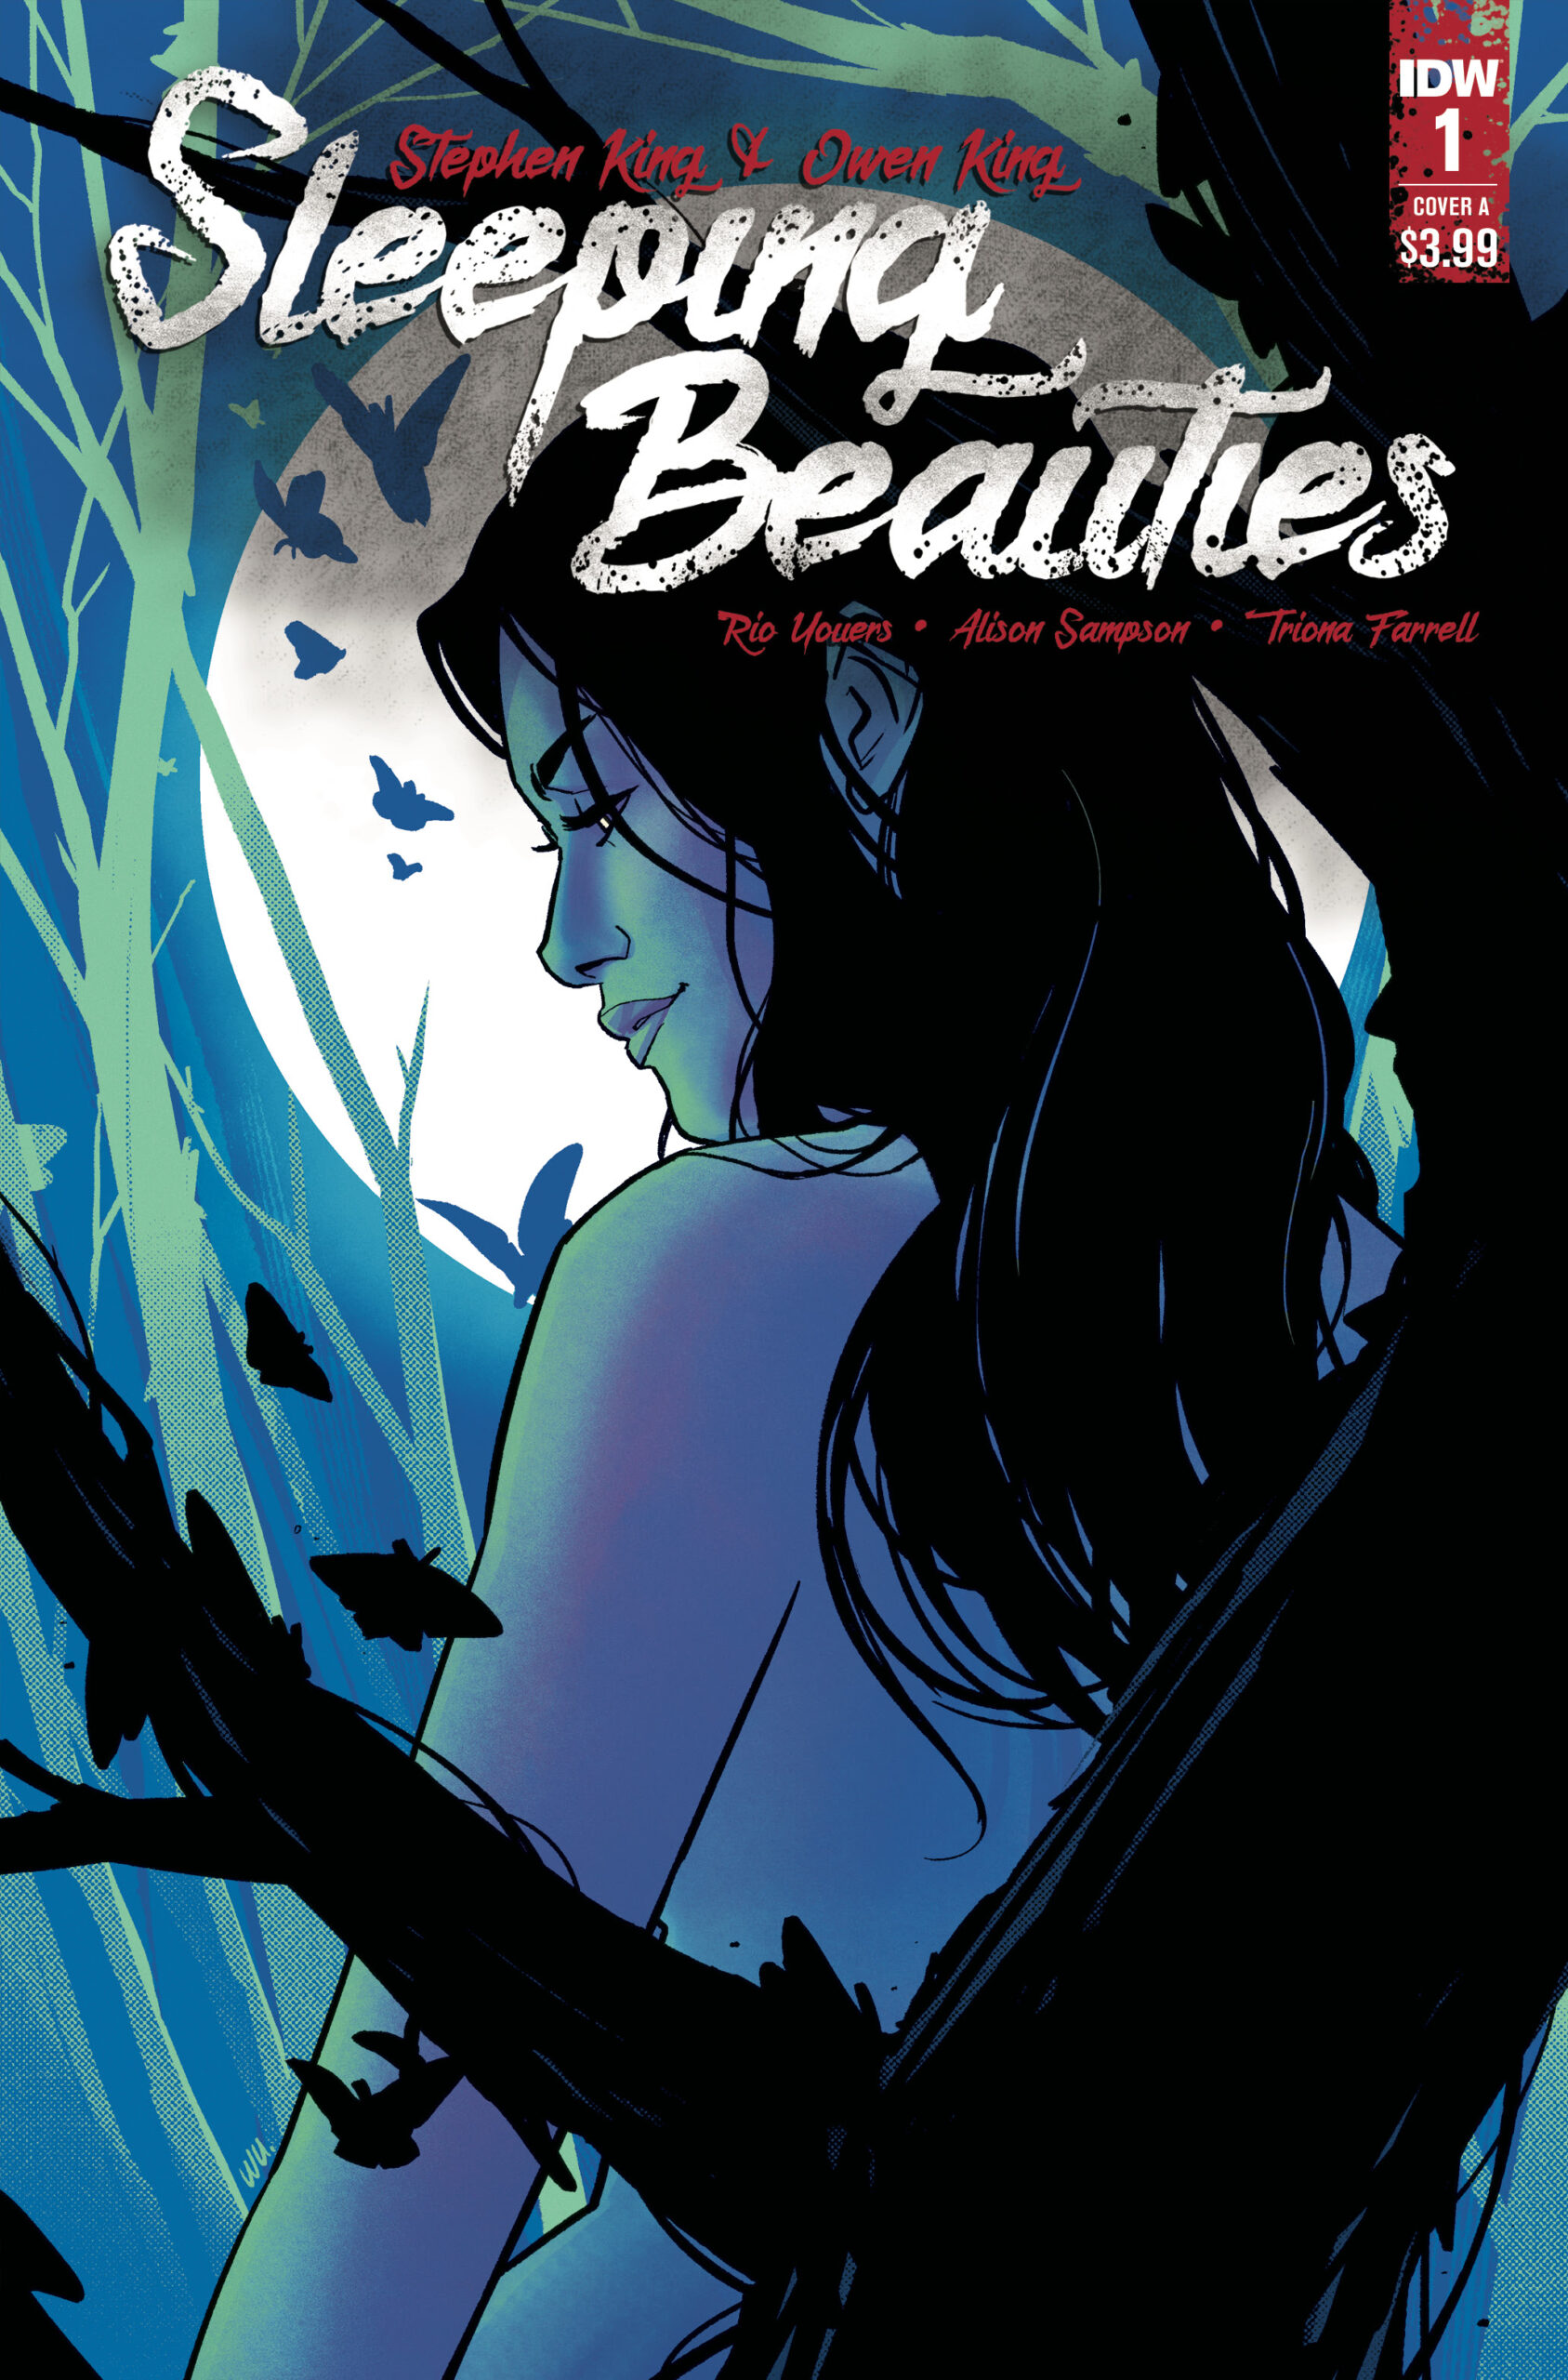 IDW PUBLISHING REVEALS RELEASE DATES FOR FIRST FOUR ISSUES OF 'SLEEPING BEAUTIES' COMIC BOOK SERIES